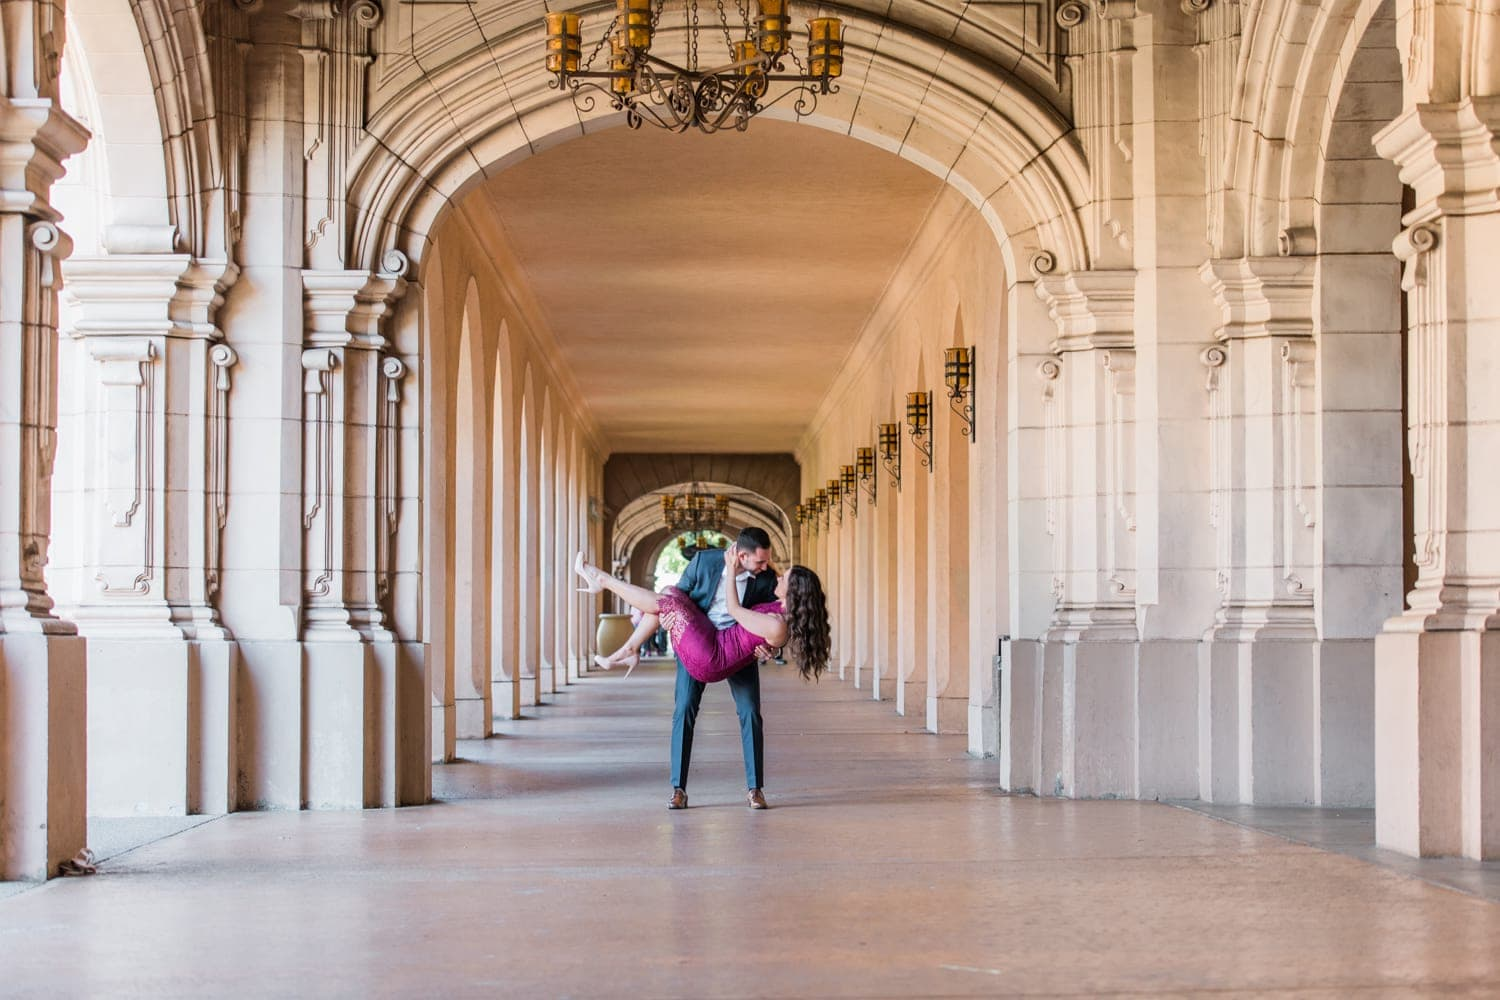 Couple holding each other under the archway at Balboa Park in San Diego, California.